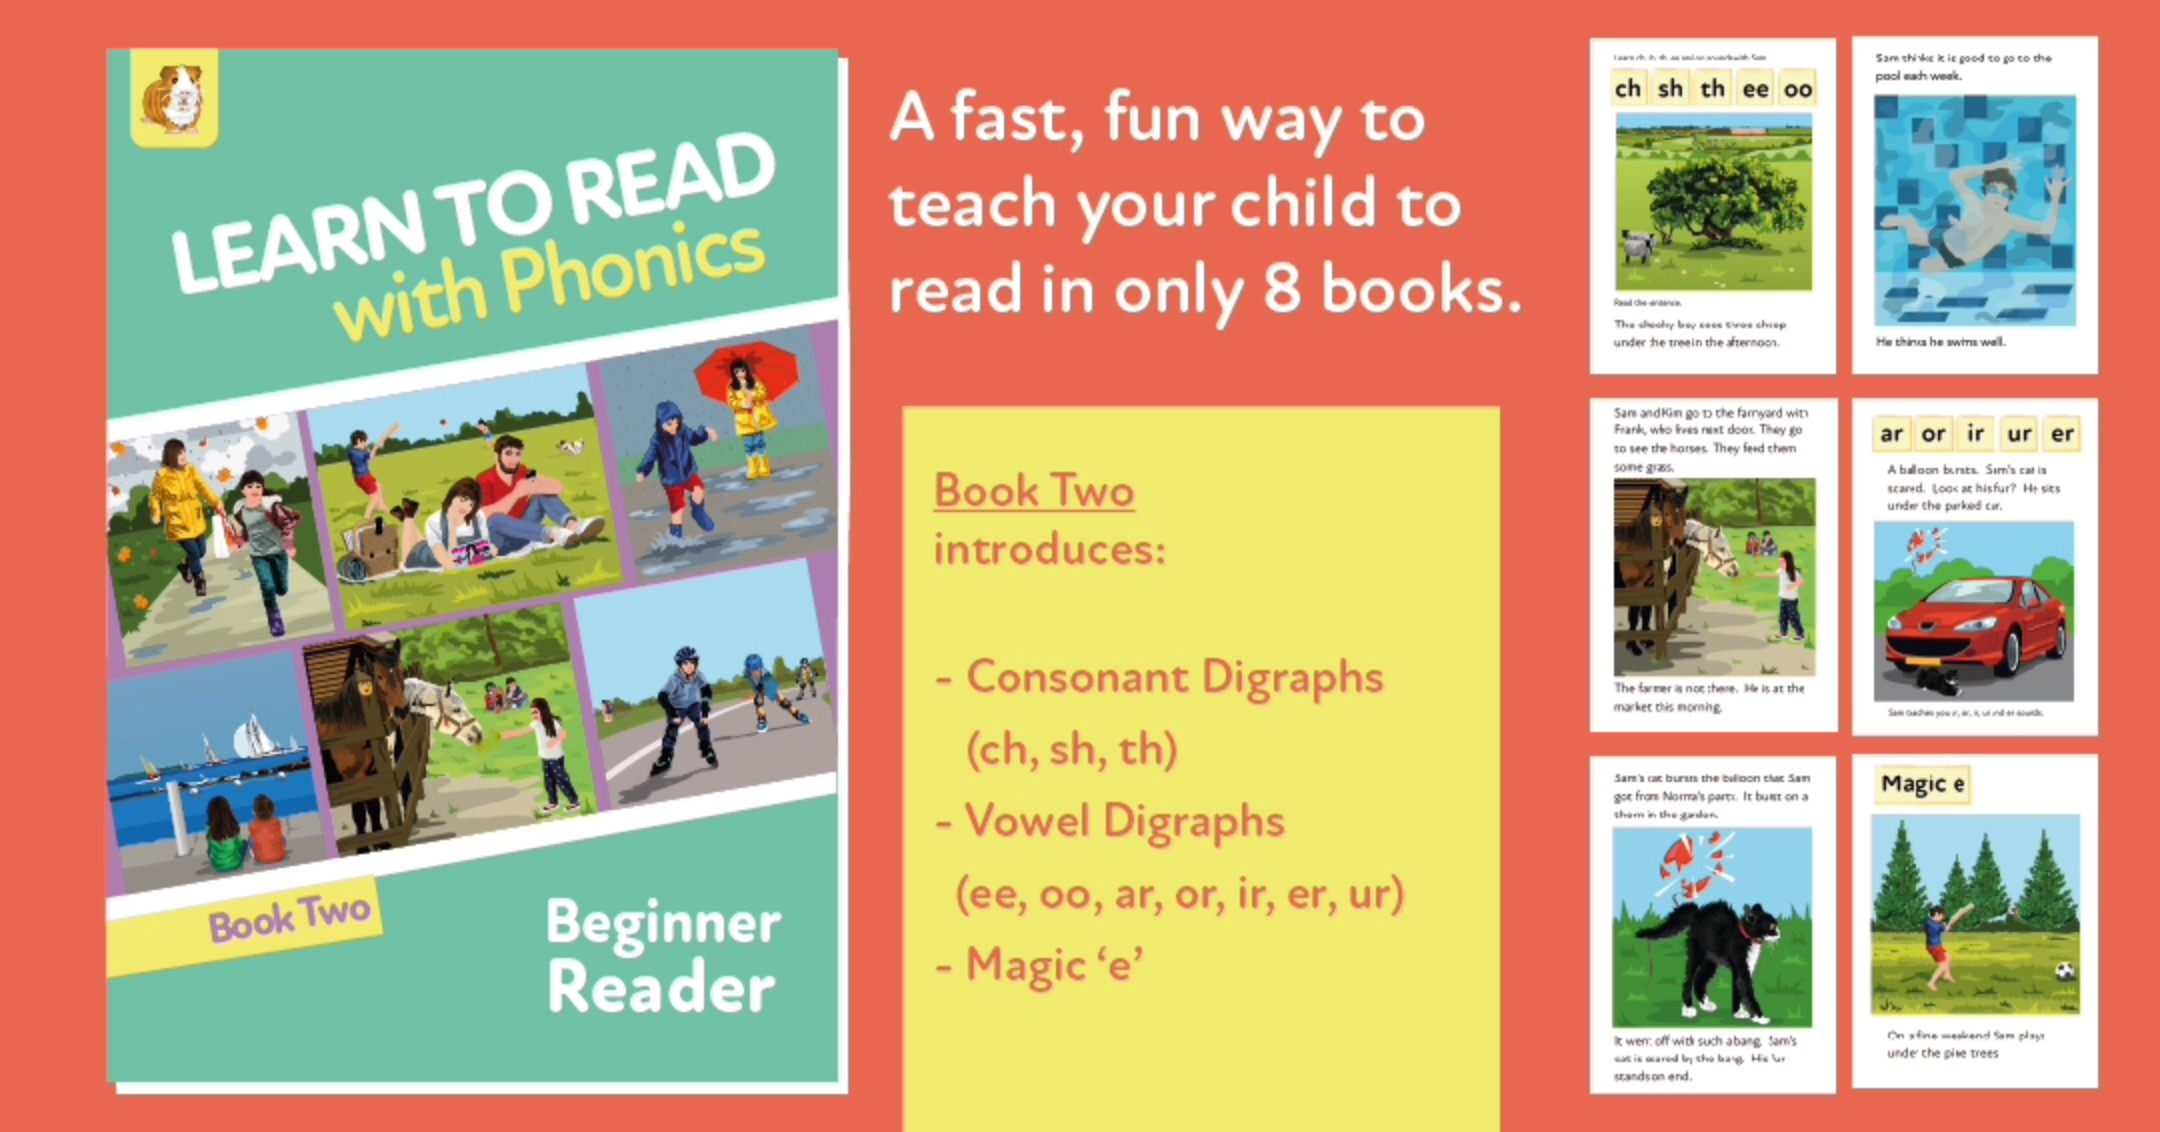 Learn To Read Rapidly With Phonics: Beginner Reader Book 2: Digital Download